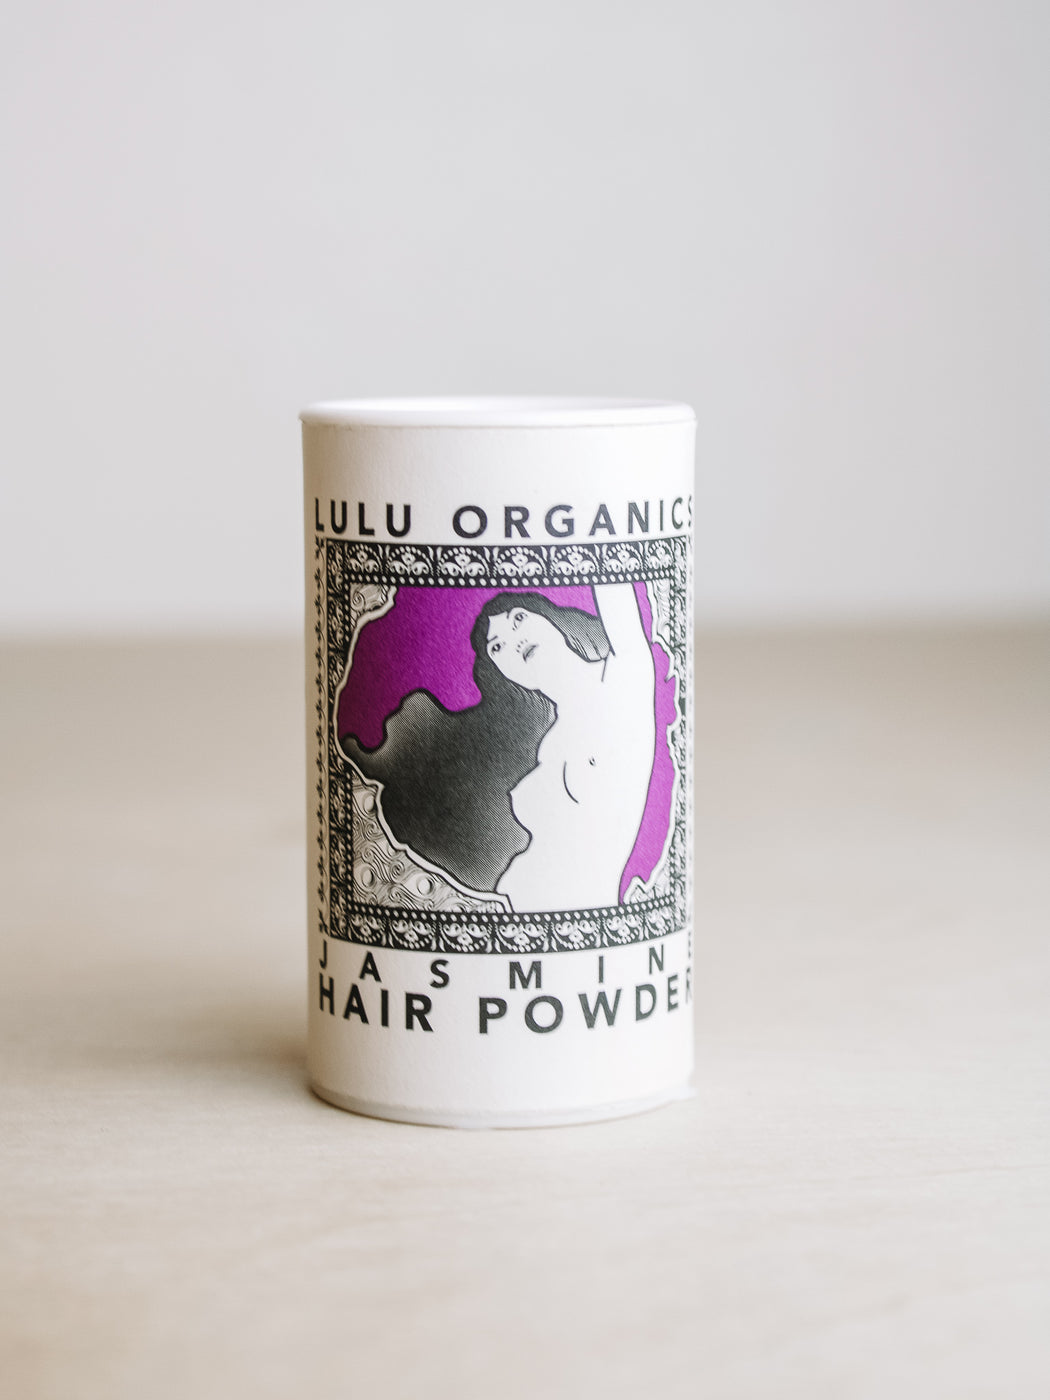 Lulu Organics- Hair Powder 1 oz